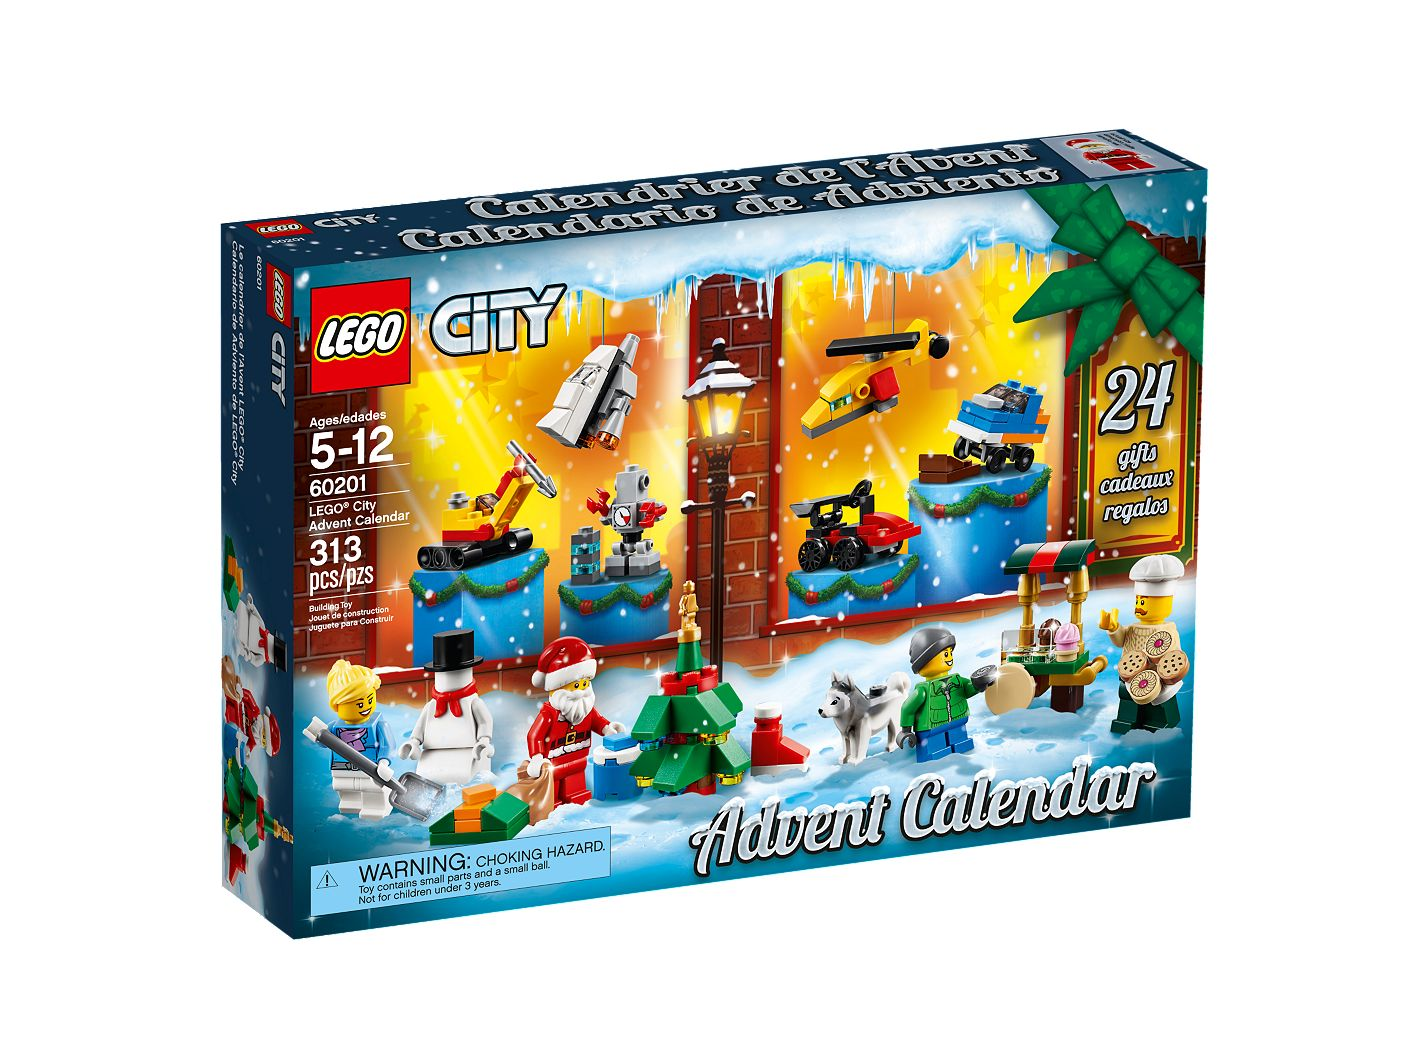 LEGO® City Advent Calendar 60201 | City | Buy online at the Official LEGO® Shop US